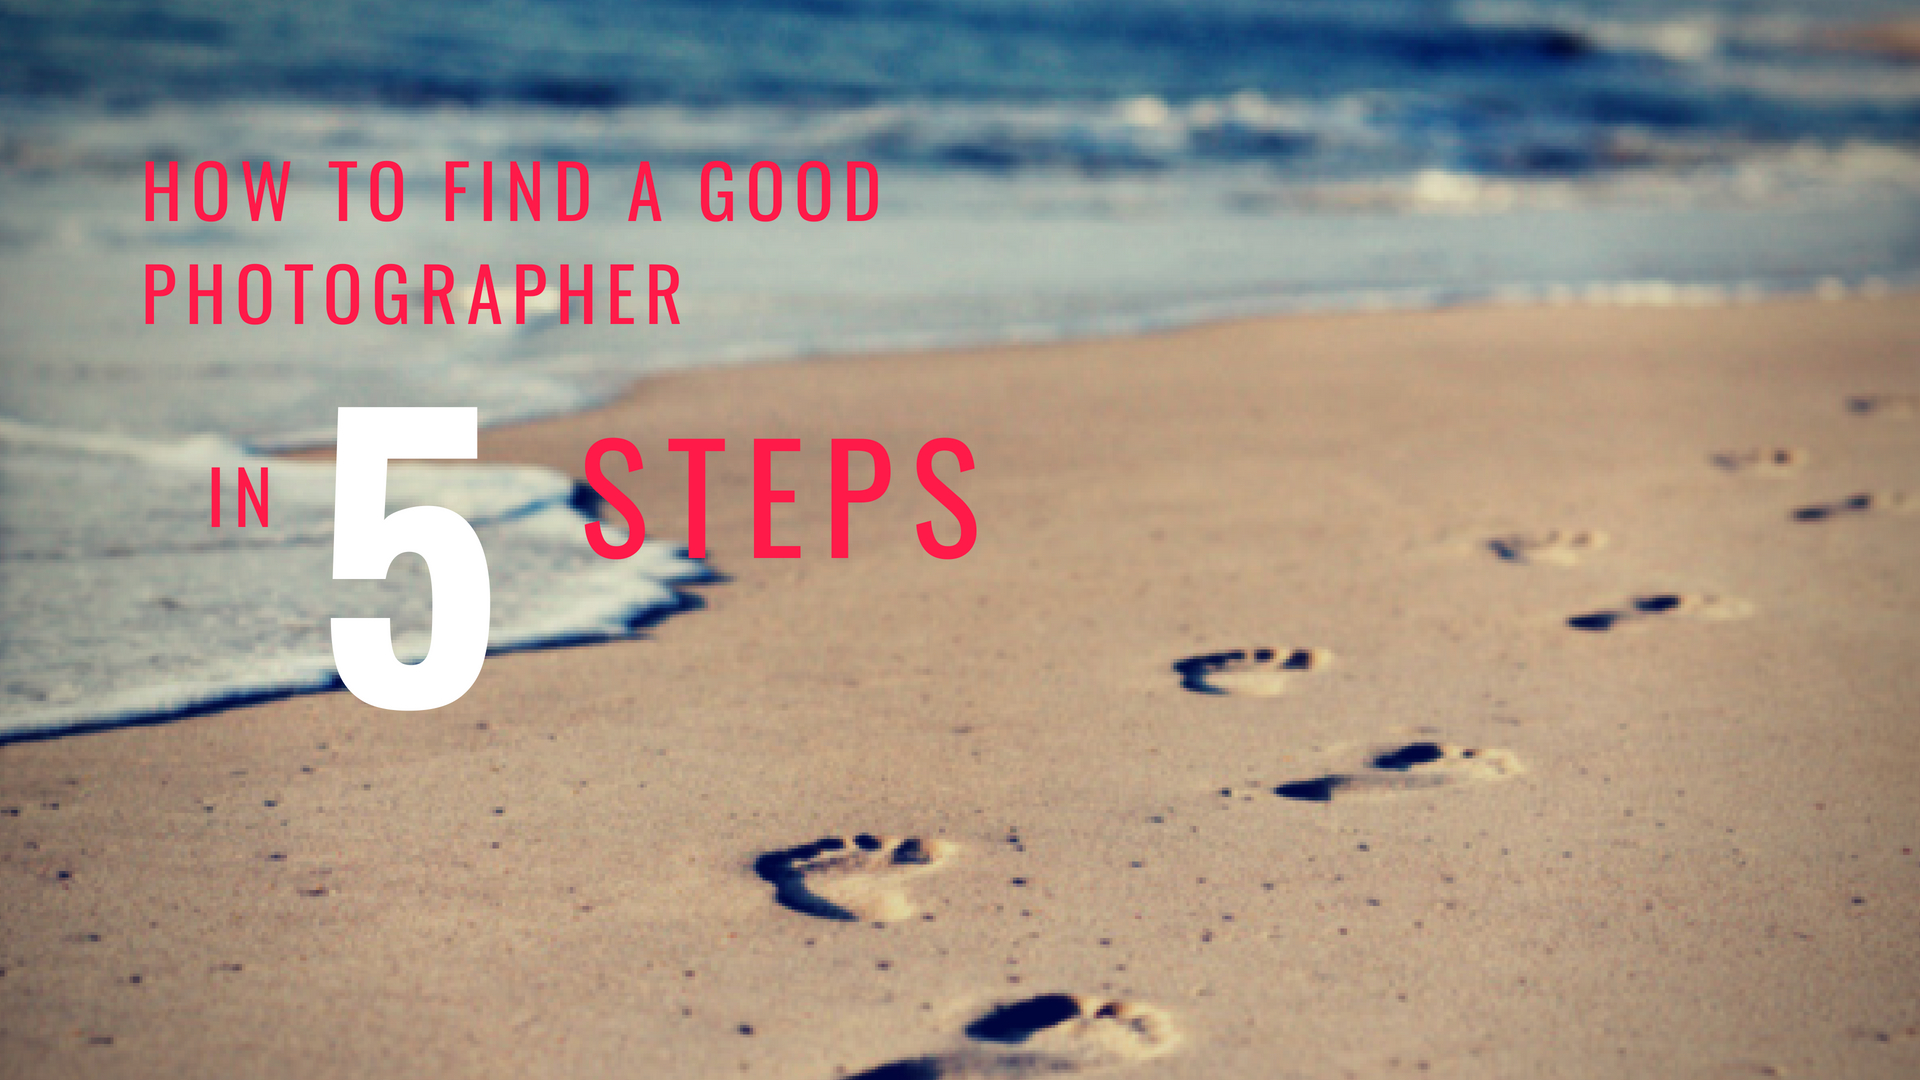 How to find a good photographer in 5 steps